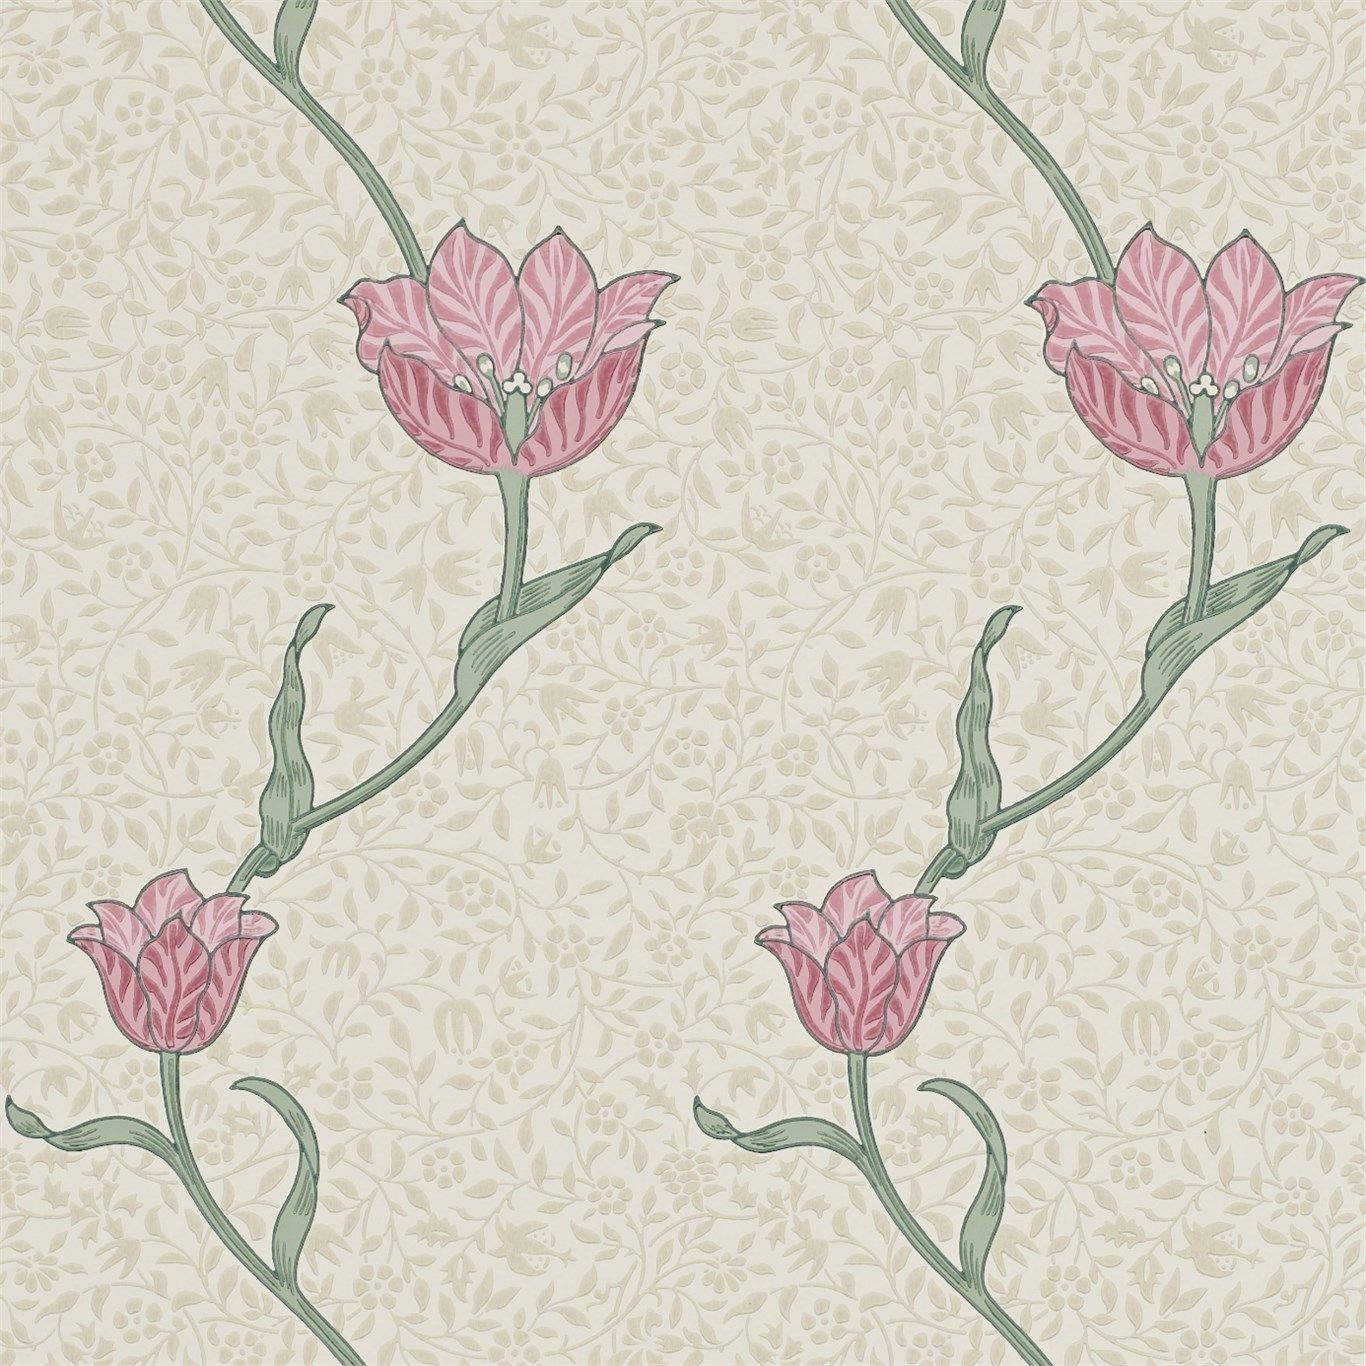 Designed by Morris in 1885 Garden Tulip is a simple ...